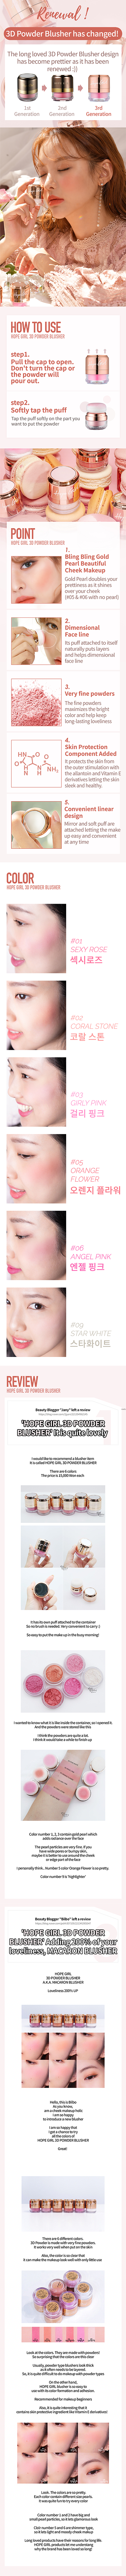 3D Powder Blusher (Star White)